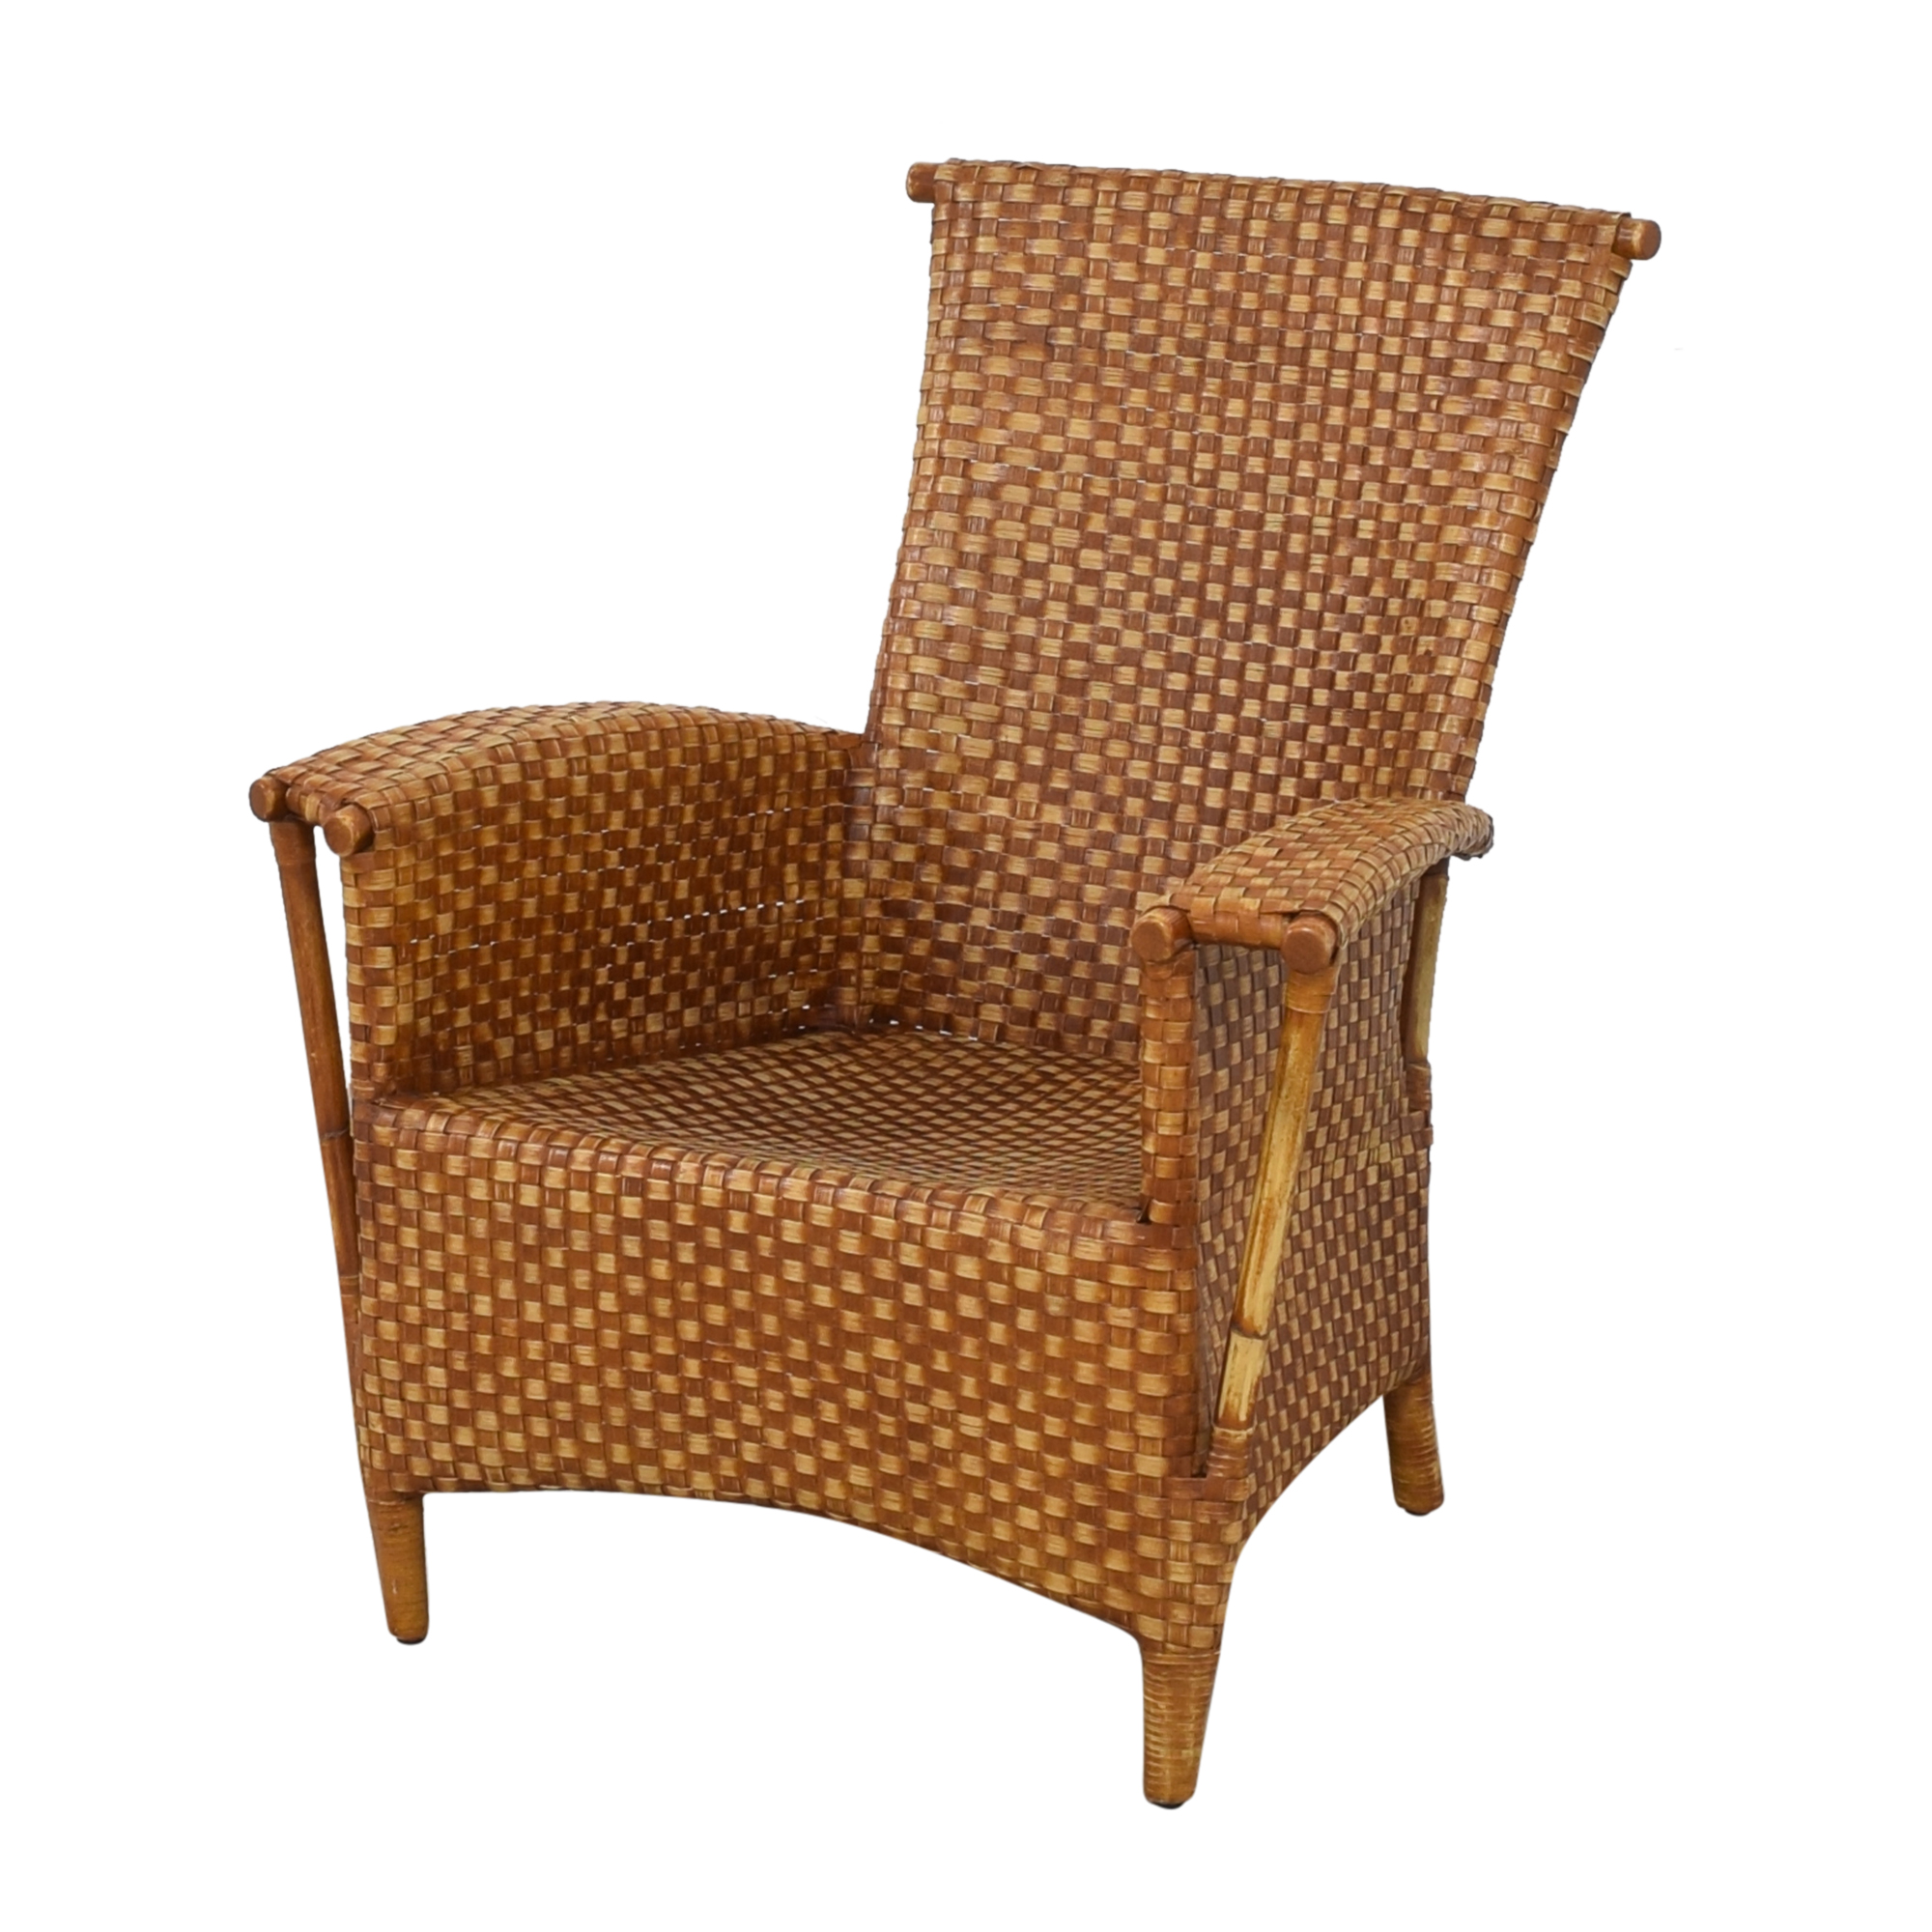 Crat & Barrel Wicker Chair / Chairs